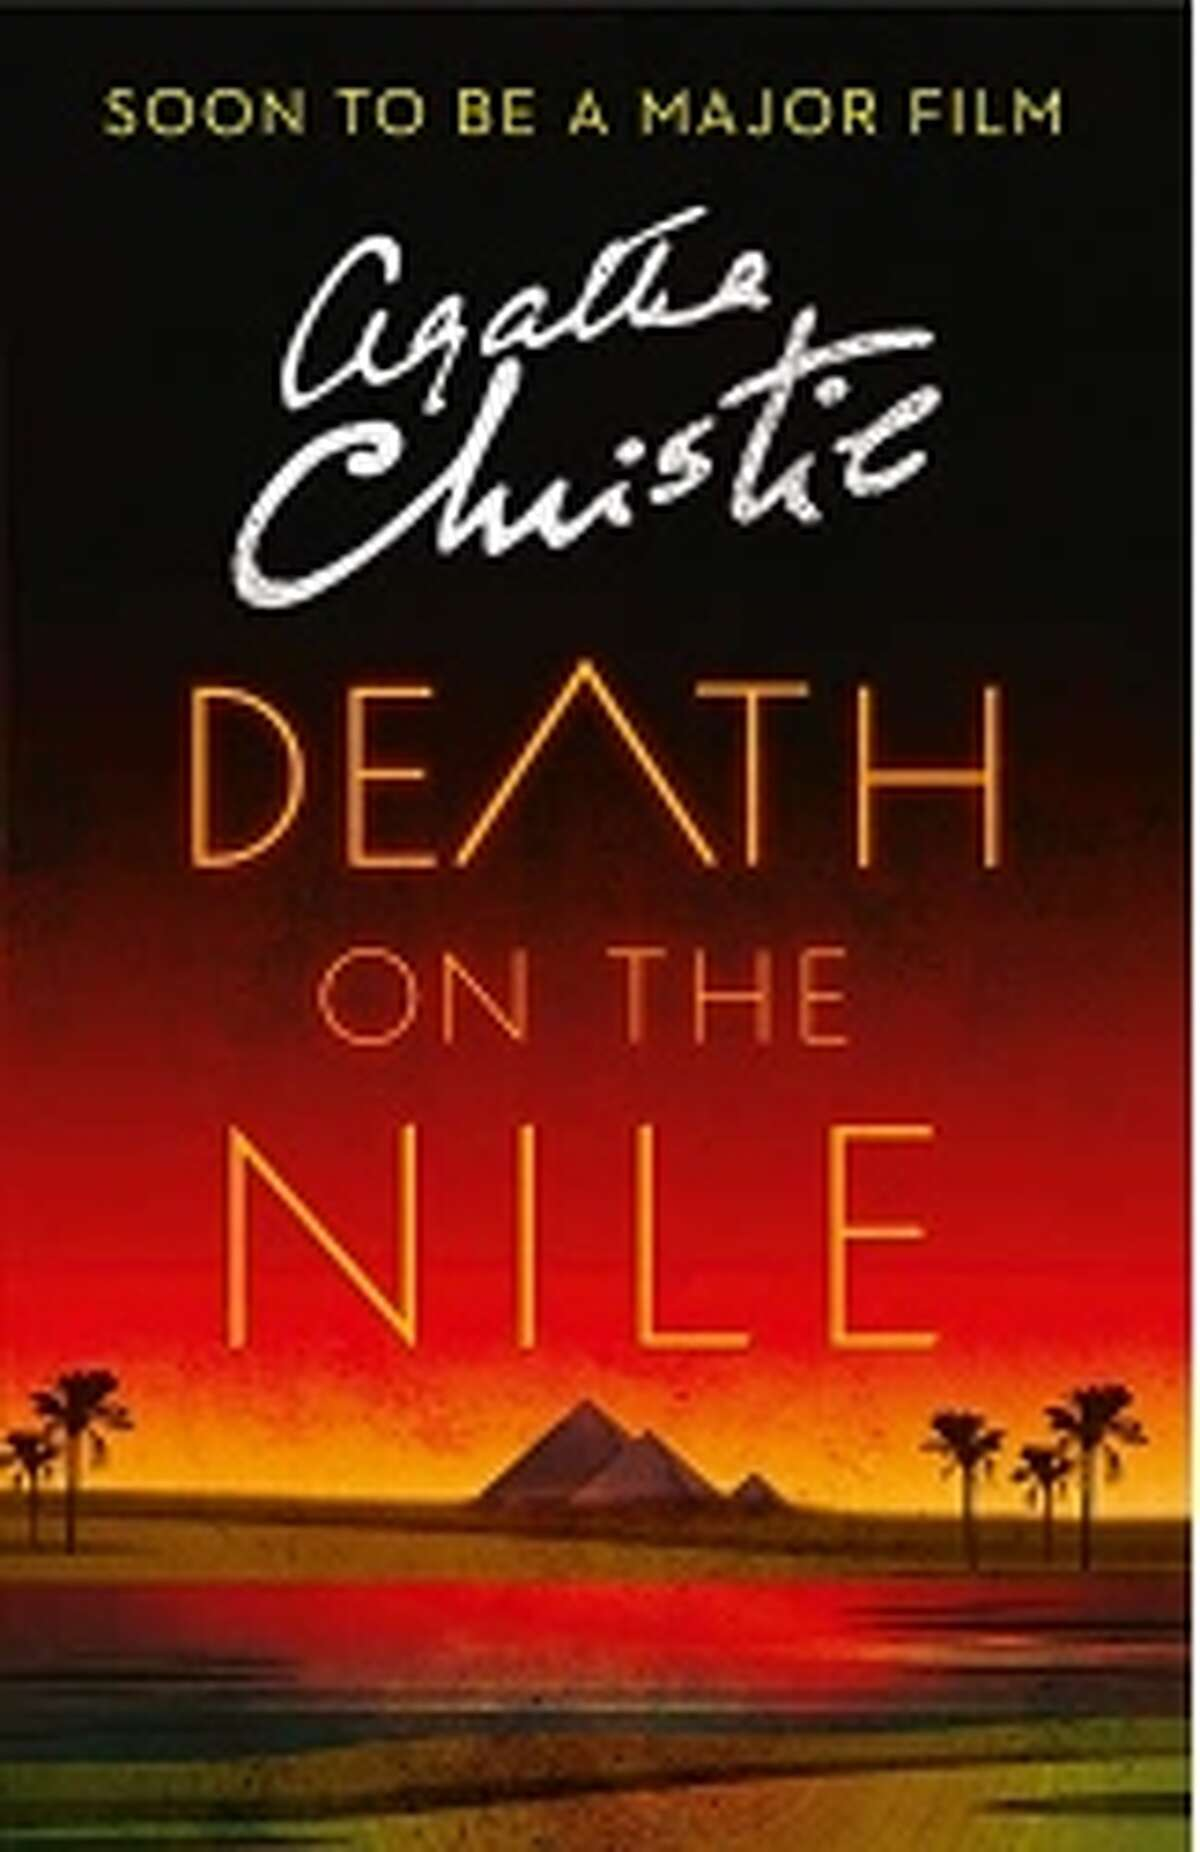 Death on the NileA follow up to the 2017 hit